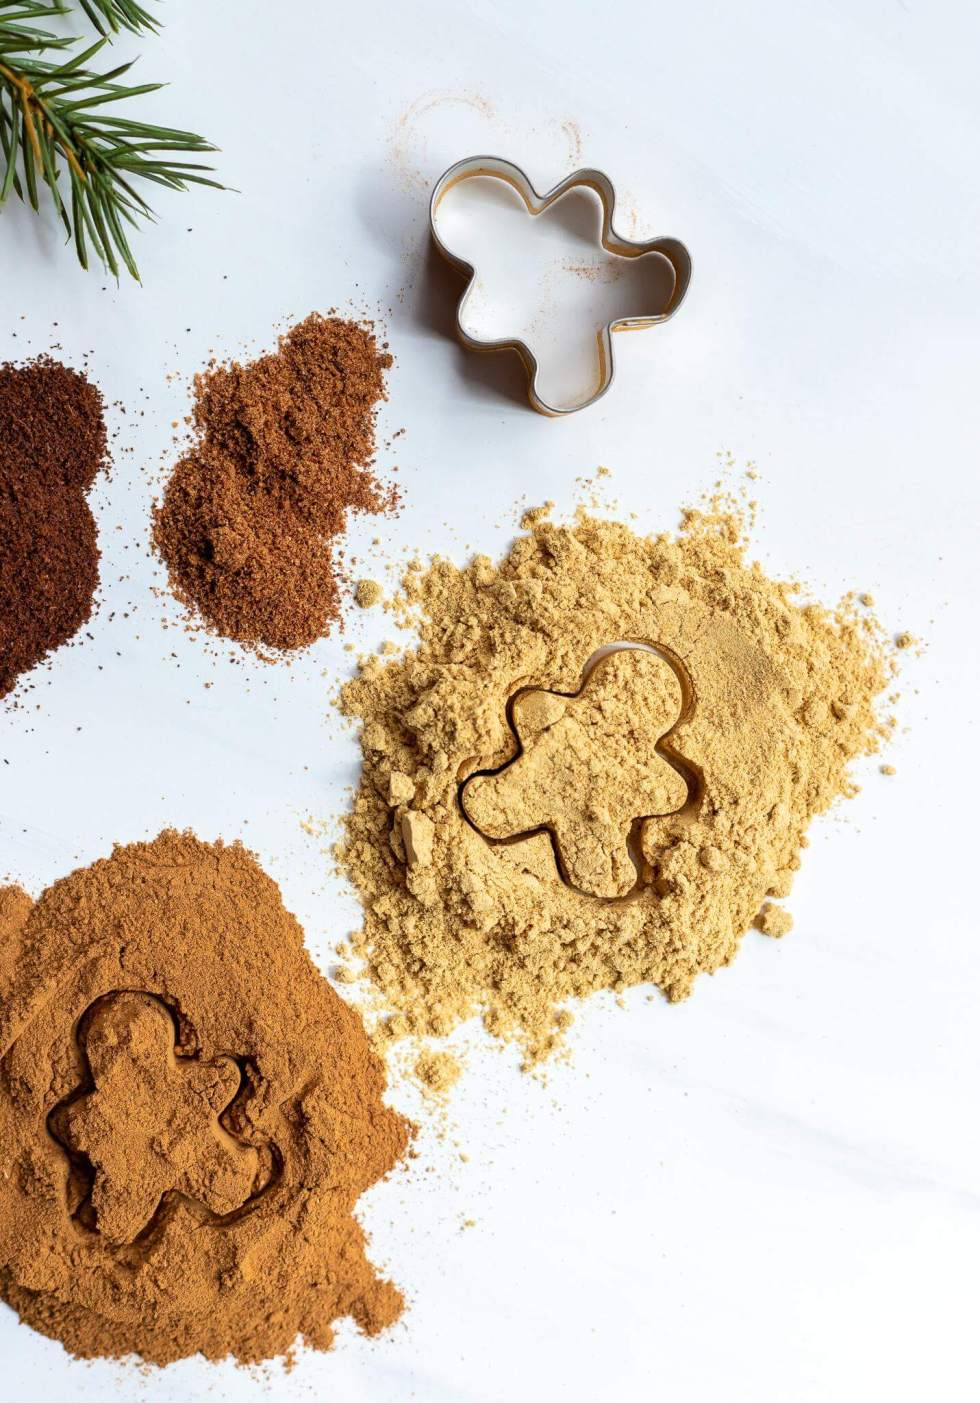 gingerbread spice mix alongside a mini gingerbread man cookie cutter